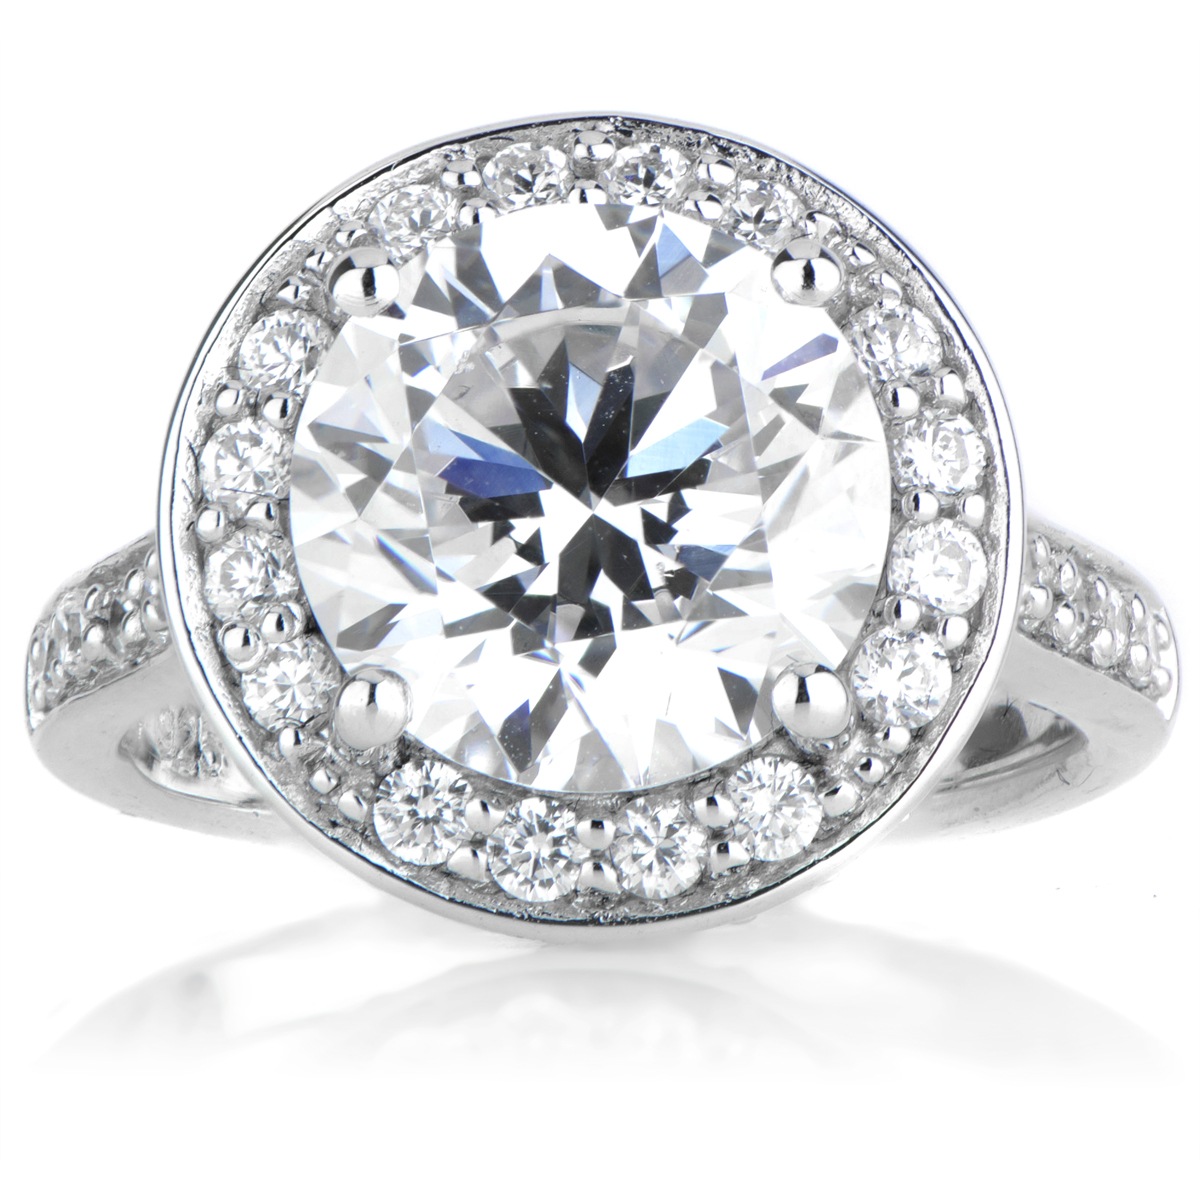 Cubic Zirconia Engagement Rings | CZ Engagement Rings | CZ Rrings